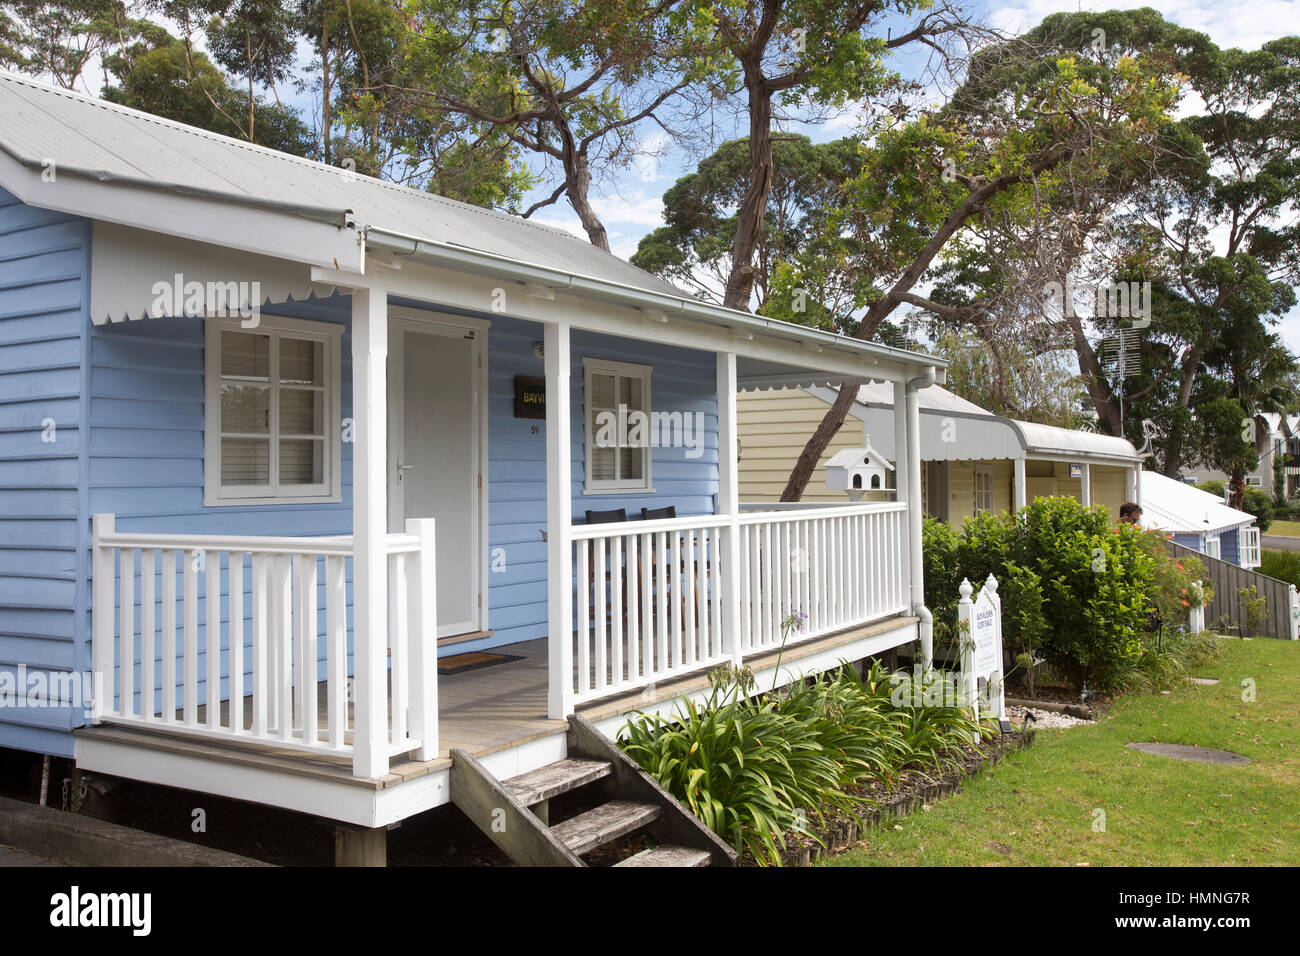 cottages to rent stock photos cottages to rent stock images alamy rh alamy com